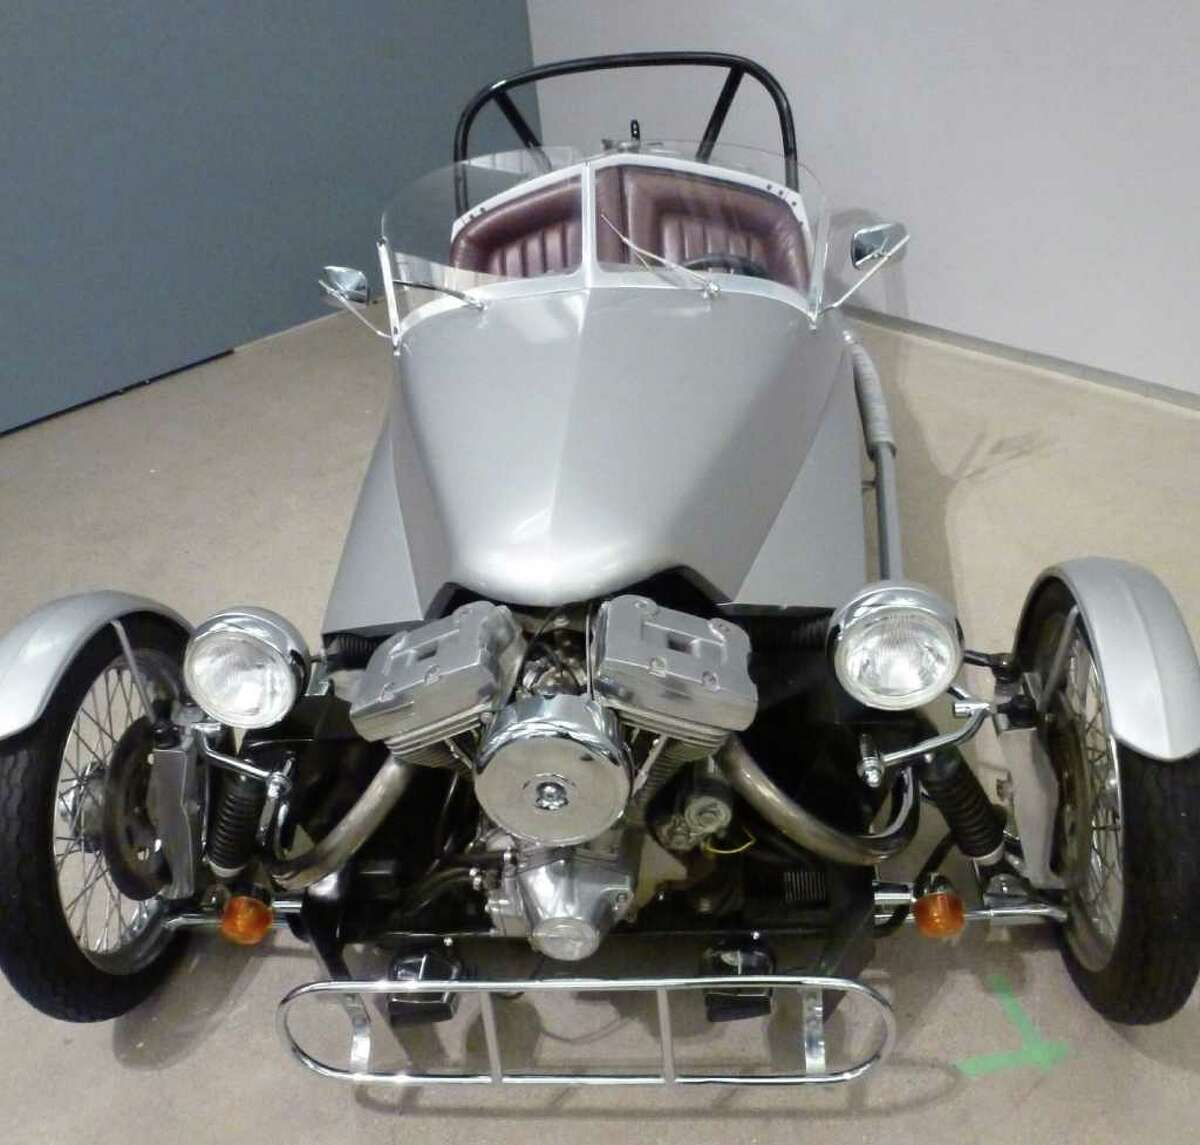 In this June 7, 2011, photo shows a three-wheel vehicle at the Harley-Davidson museum in Milwaukee. The vehicle, called